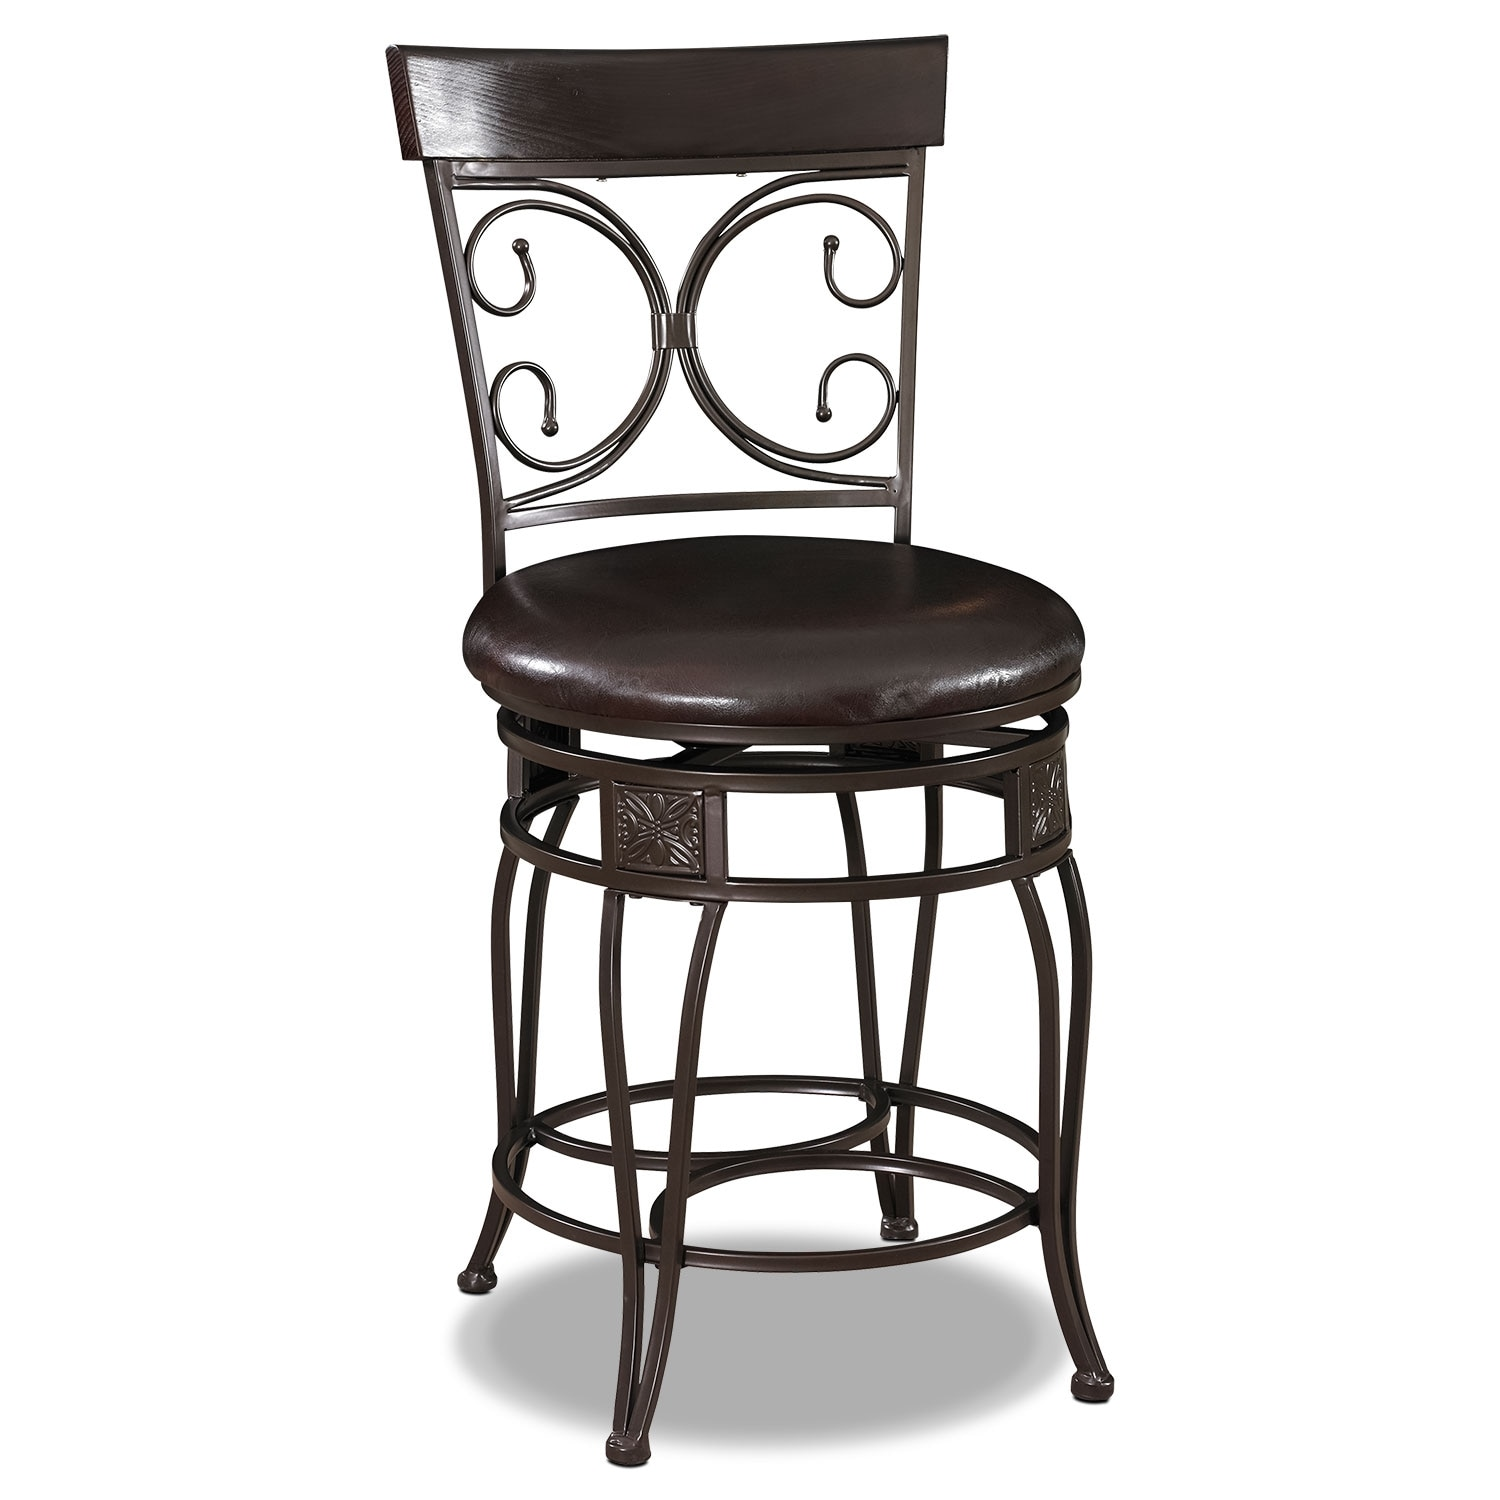 Accent and Occasional Furniture - Grandview Counter-Height Stool - Brown